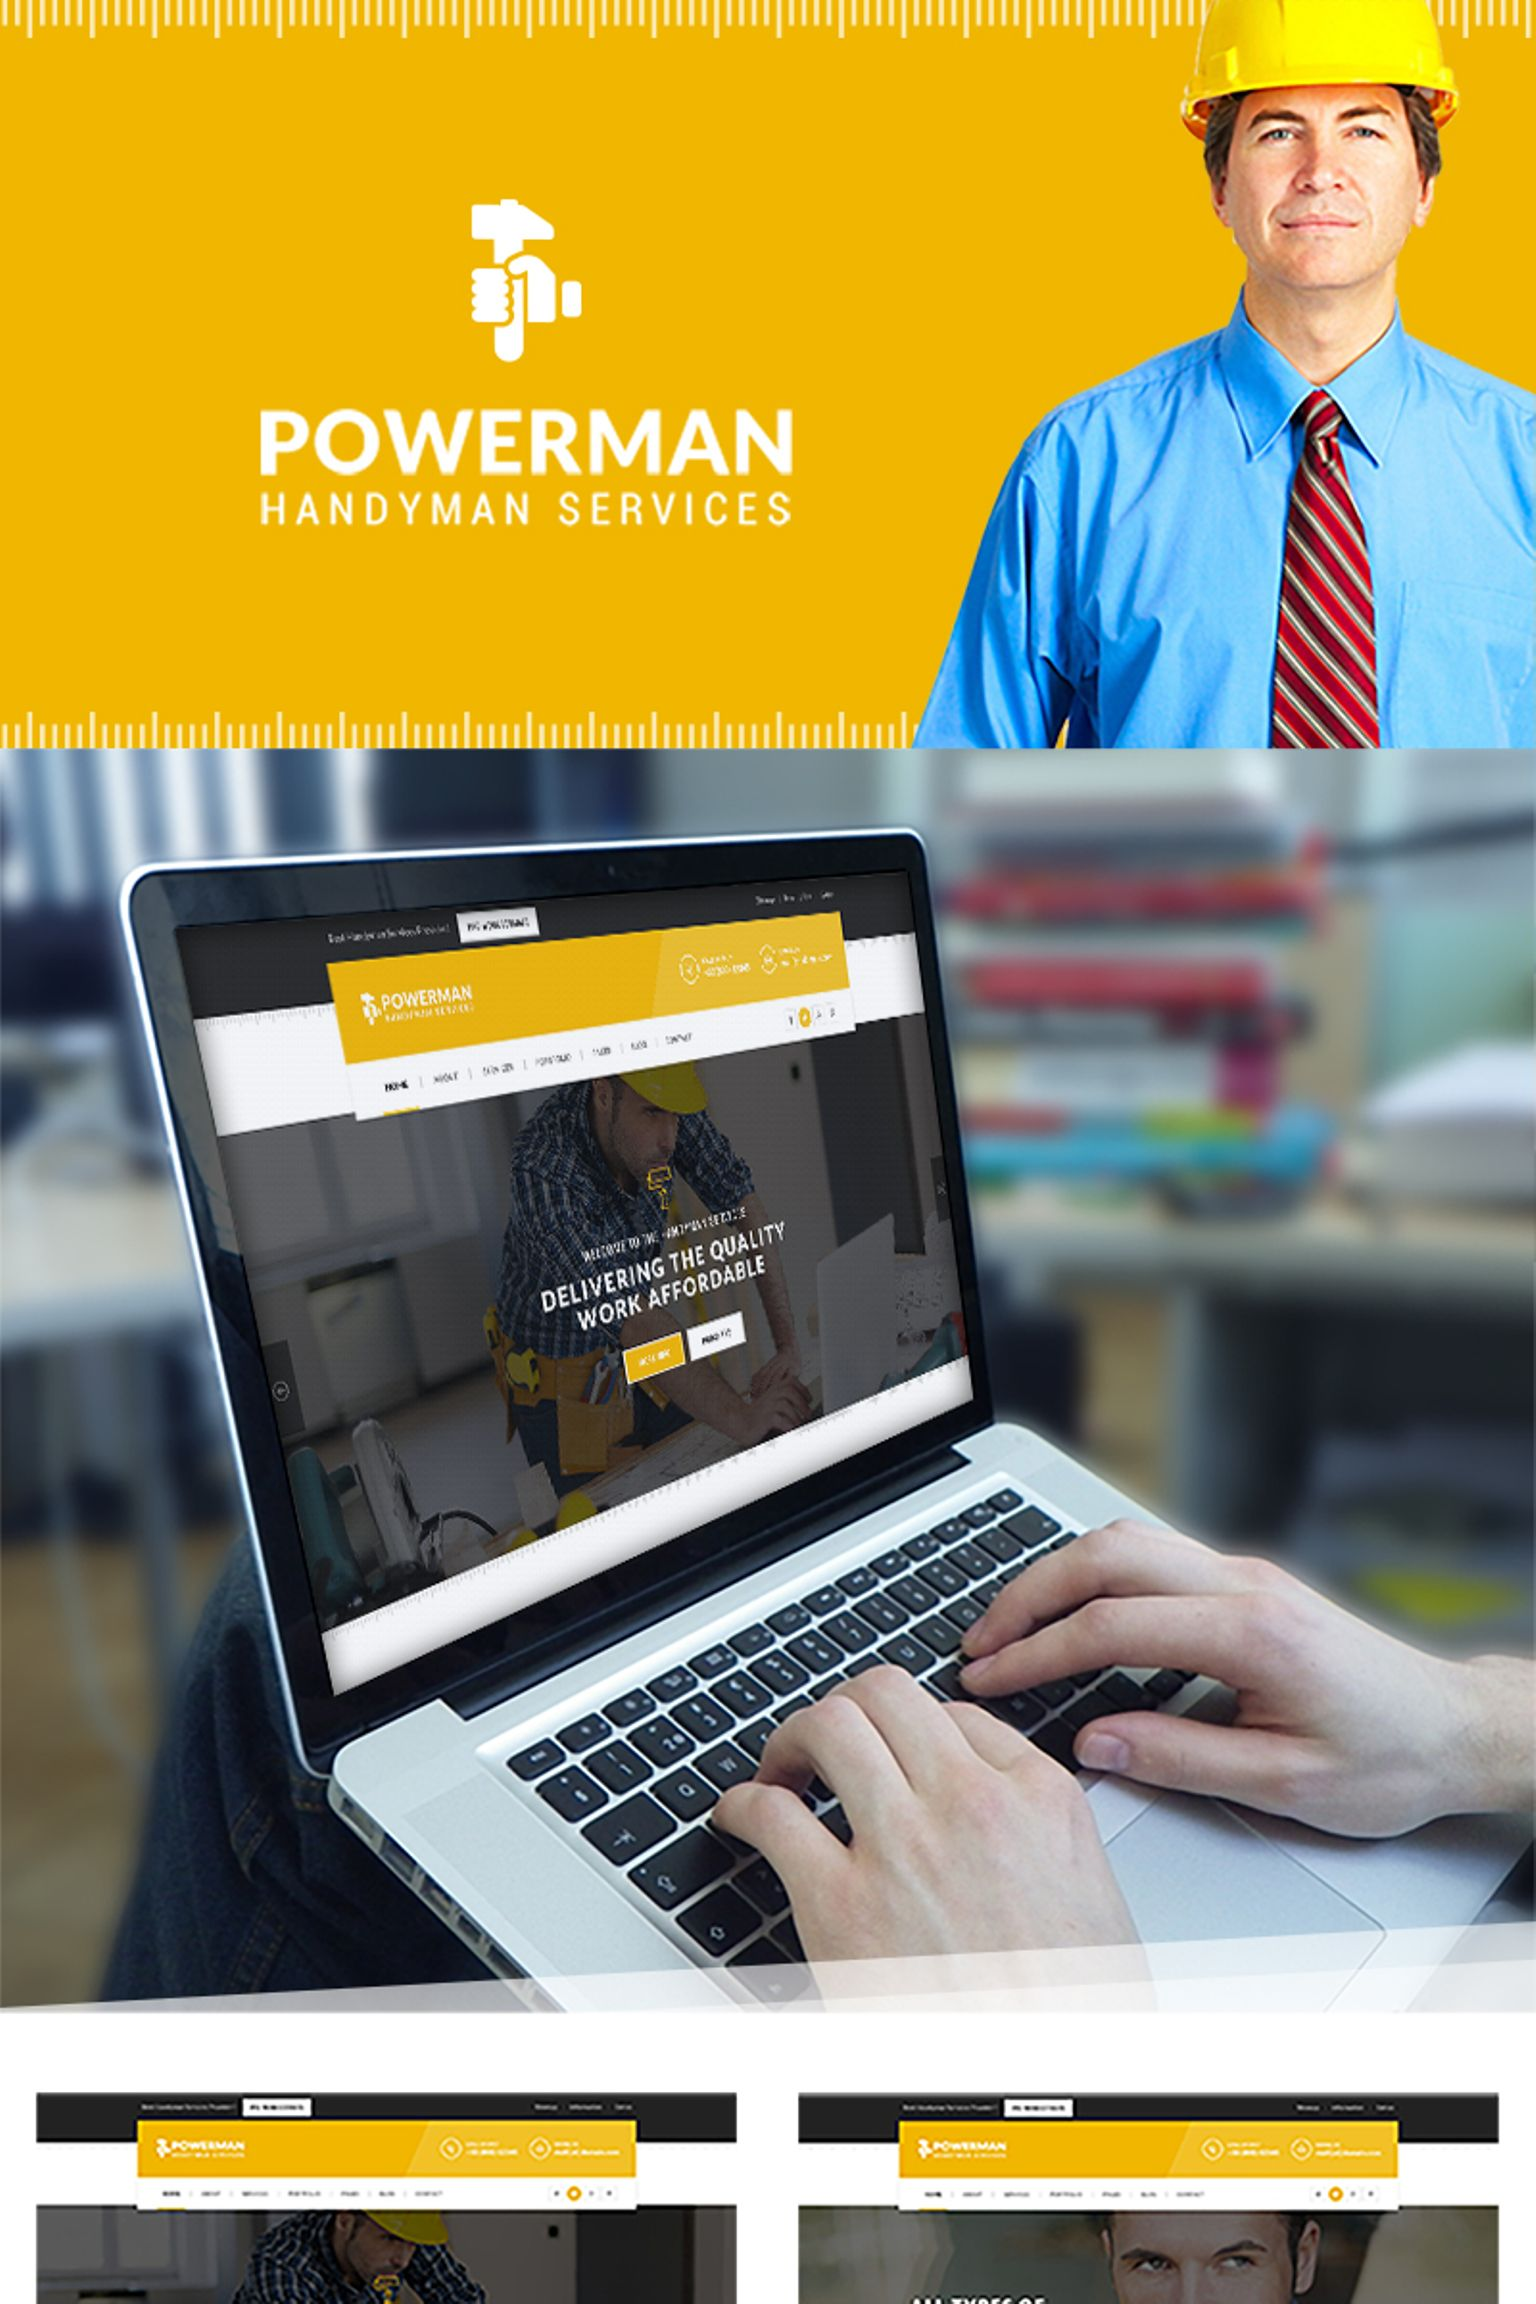 Website Design Template 65725 - handyman building delivery renovation plumber roofing repair construction carpenter maintenance cleaning electricity